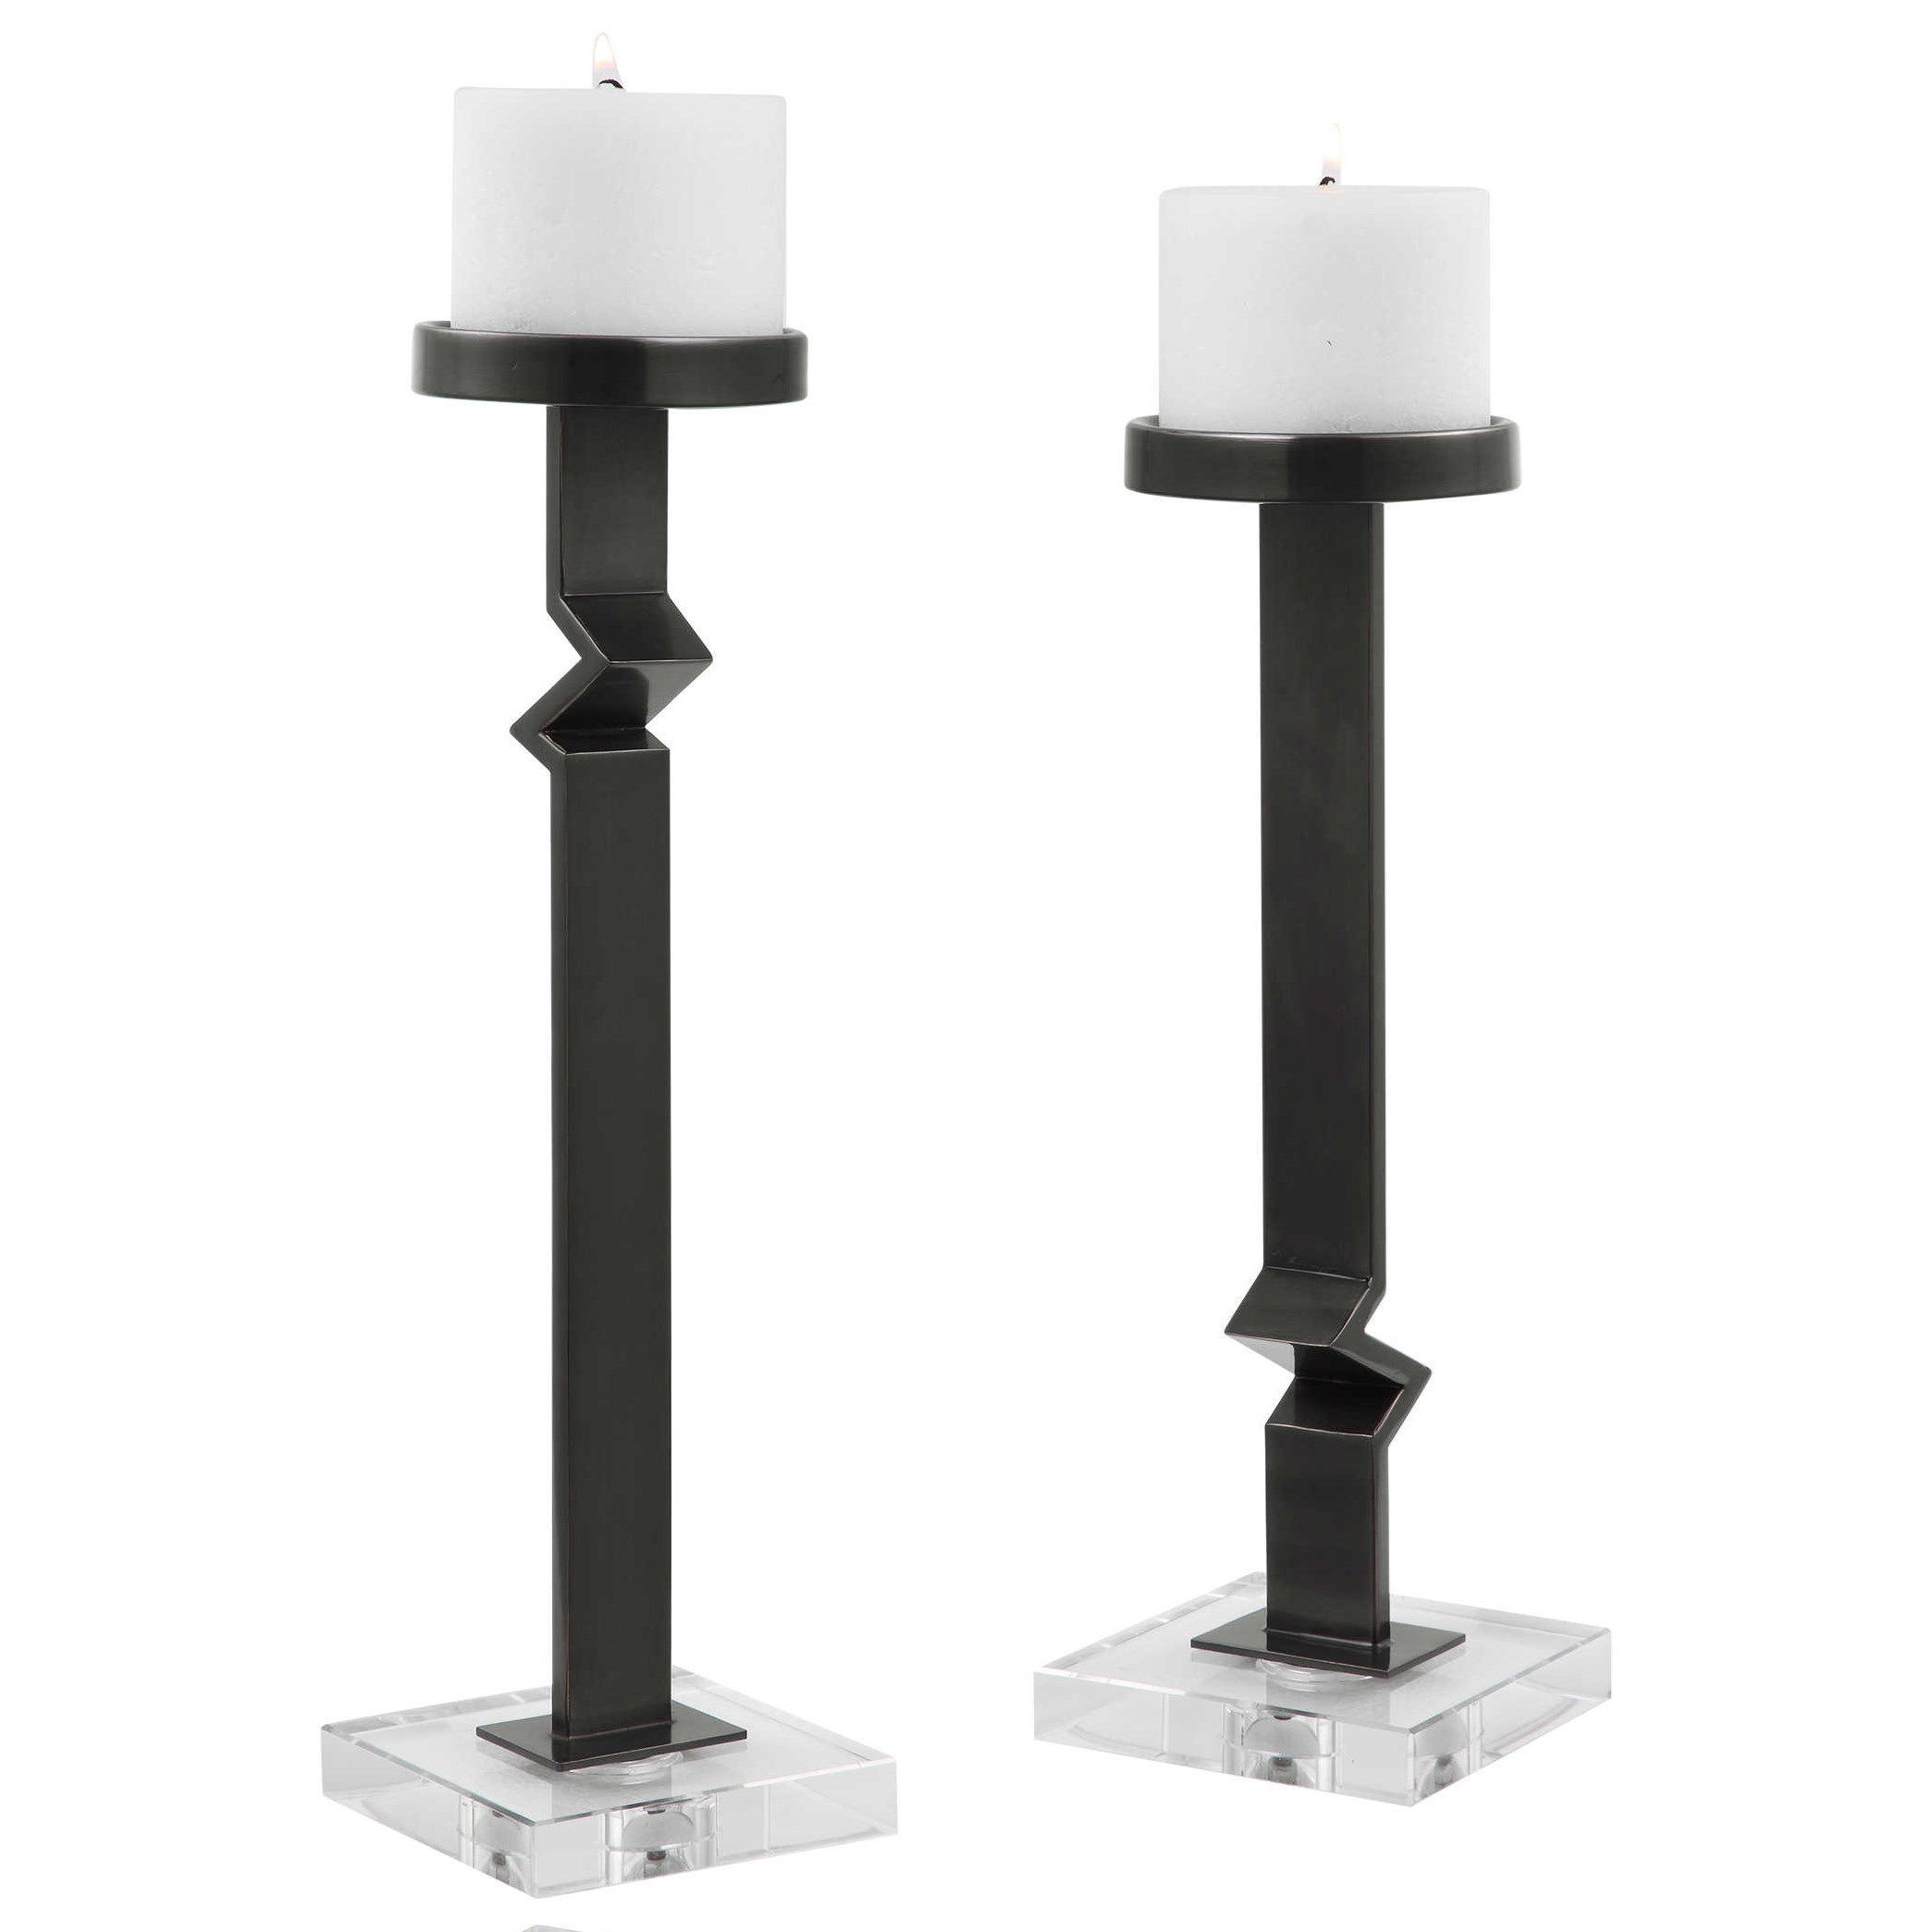 Accessories - Candle Holders Daelan Contemporary Candleholders, S/2 by Uttermost at Furniture and ApplianceMart